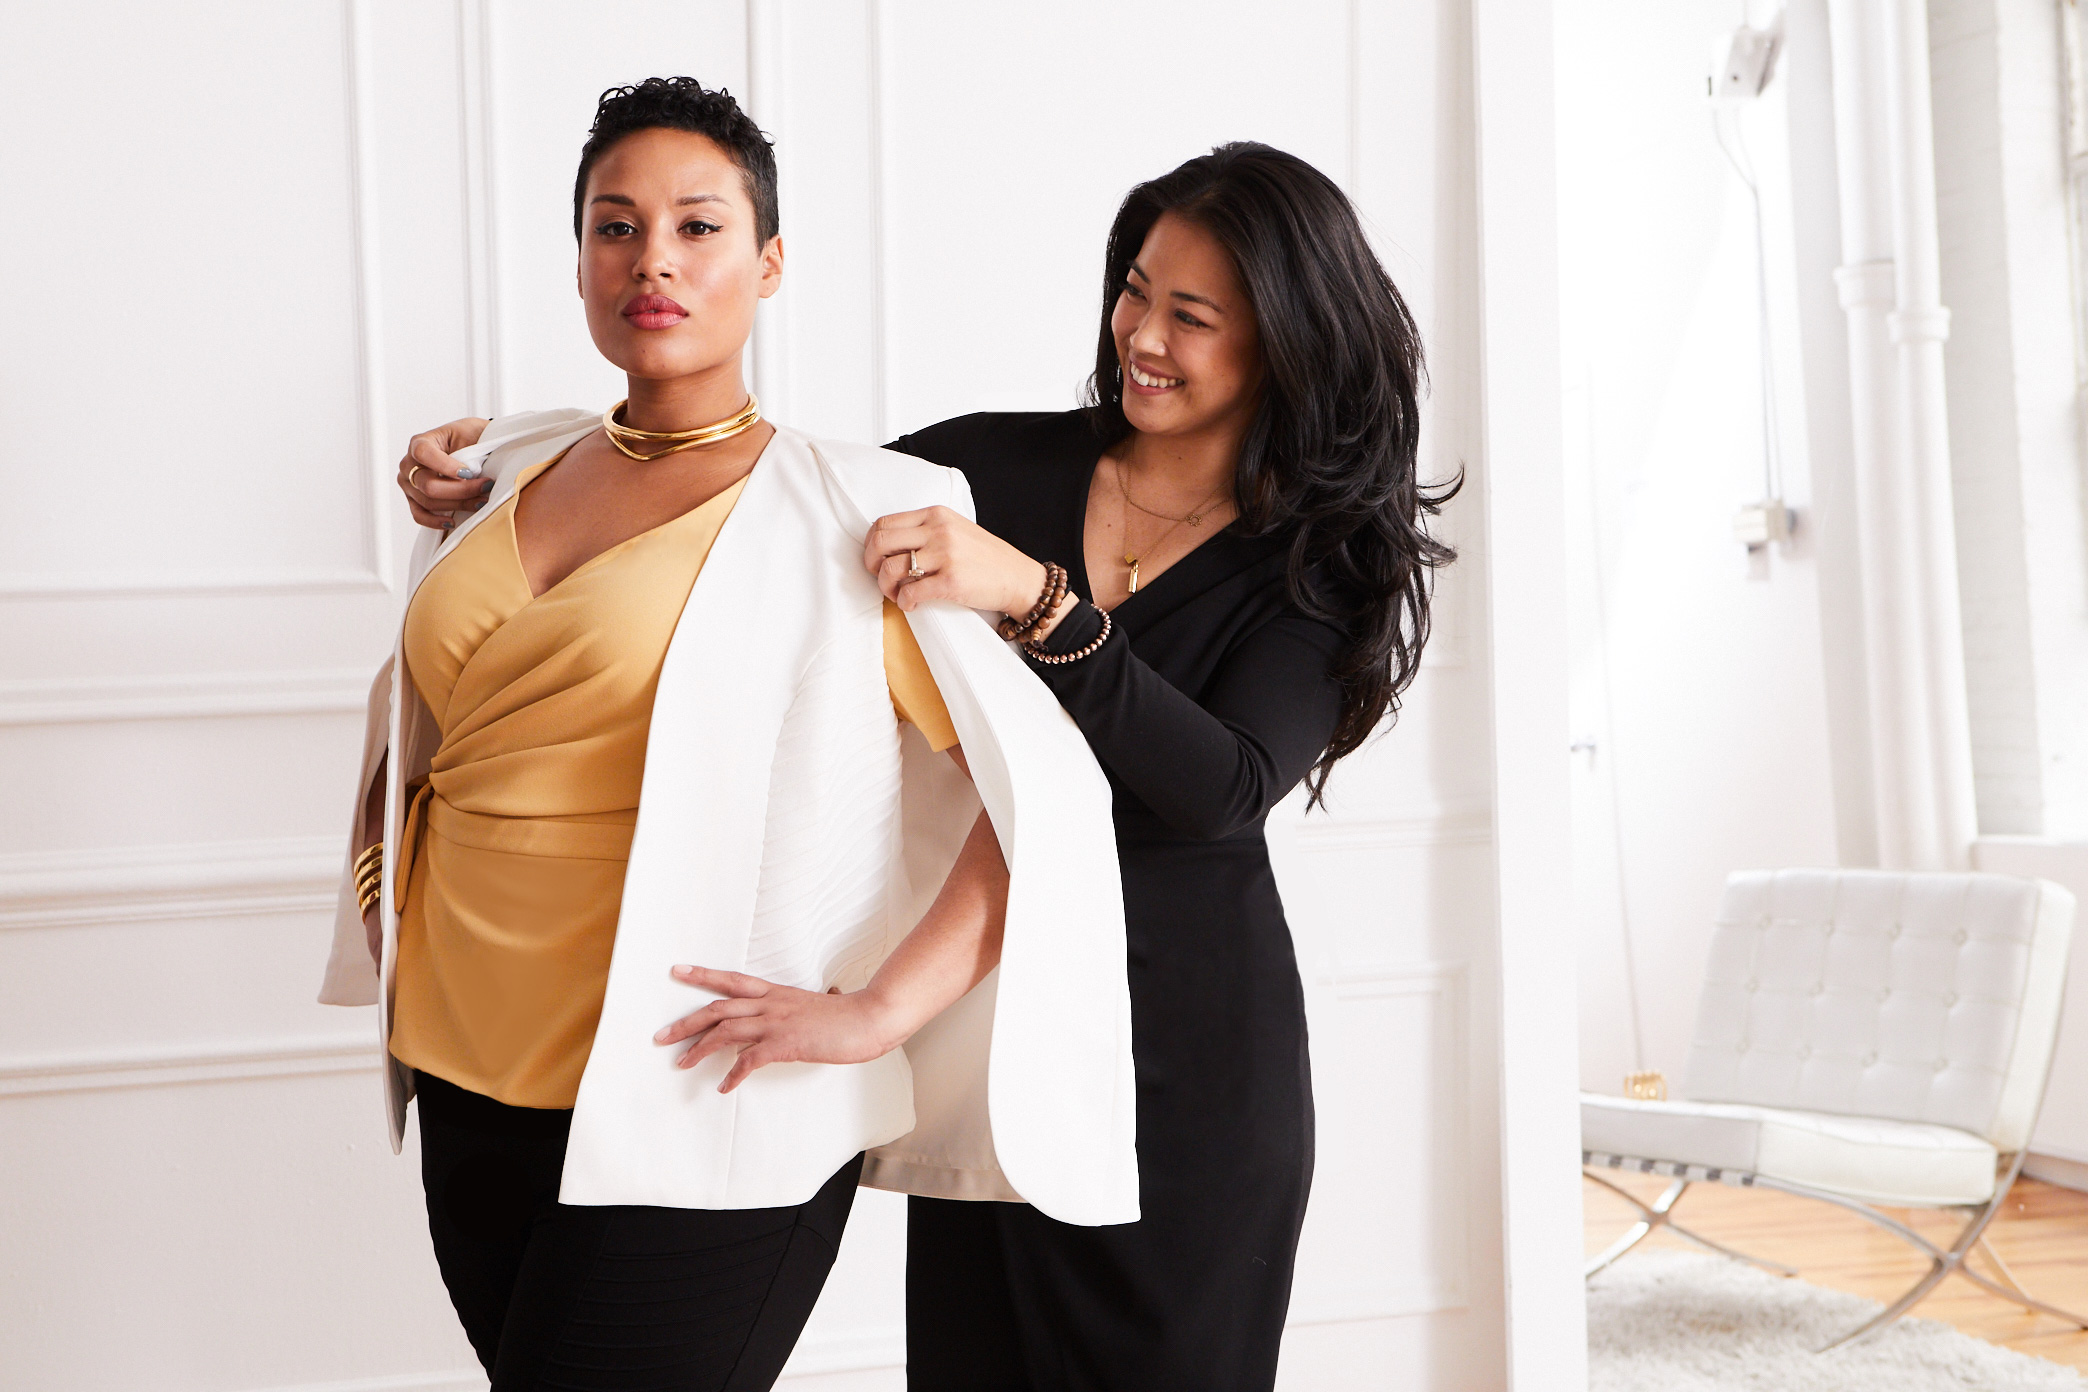 Founder Lisa Sun and a model in her collection